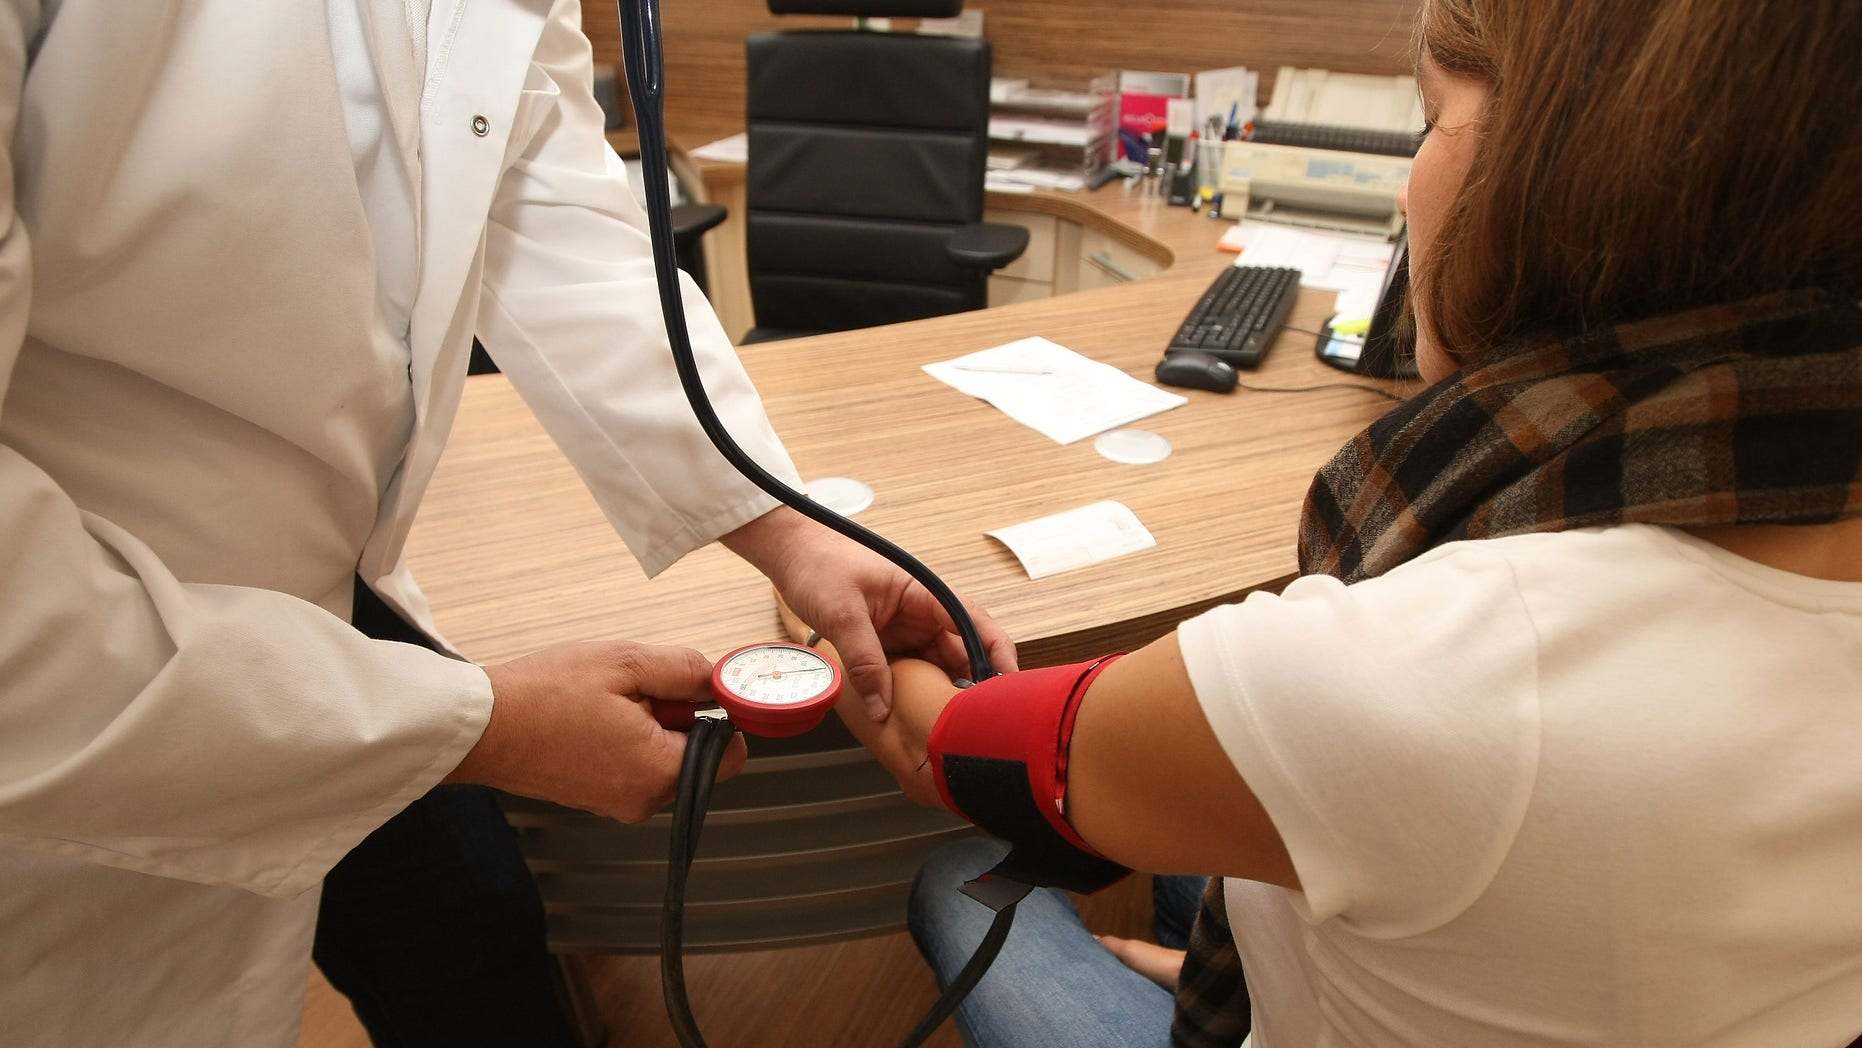 BERLIN, GERMANY - SEPTEMBER 05:  A doctor checks a patient's blood pressure on September 5, 2012 in Berlin, Germany. Doctors in the country are demanding higher payments from health insurance companies (Krankenkassen). Over 20 doctors' associations are expected to hold a vote this week over possible strikes and temporary closings of their practices if assurances that a requested additional annual increase of 3.5 billion euros (4,390,475,550 USD) in payments are not provided. The Kassenaerztlichen Bundesvereinigung (KBV), the National Association of Statutory Health Insurance Physicians, unexpectedly broke off talks with the health insurance companies on Monday.  (Photo by Adam Berry/Getty Images)